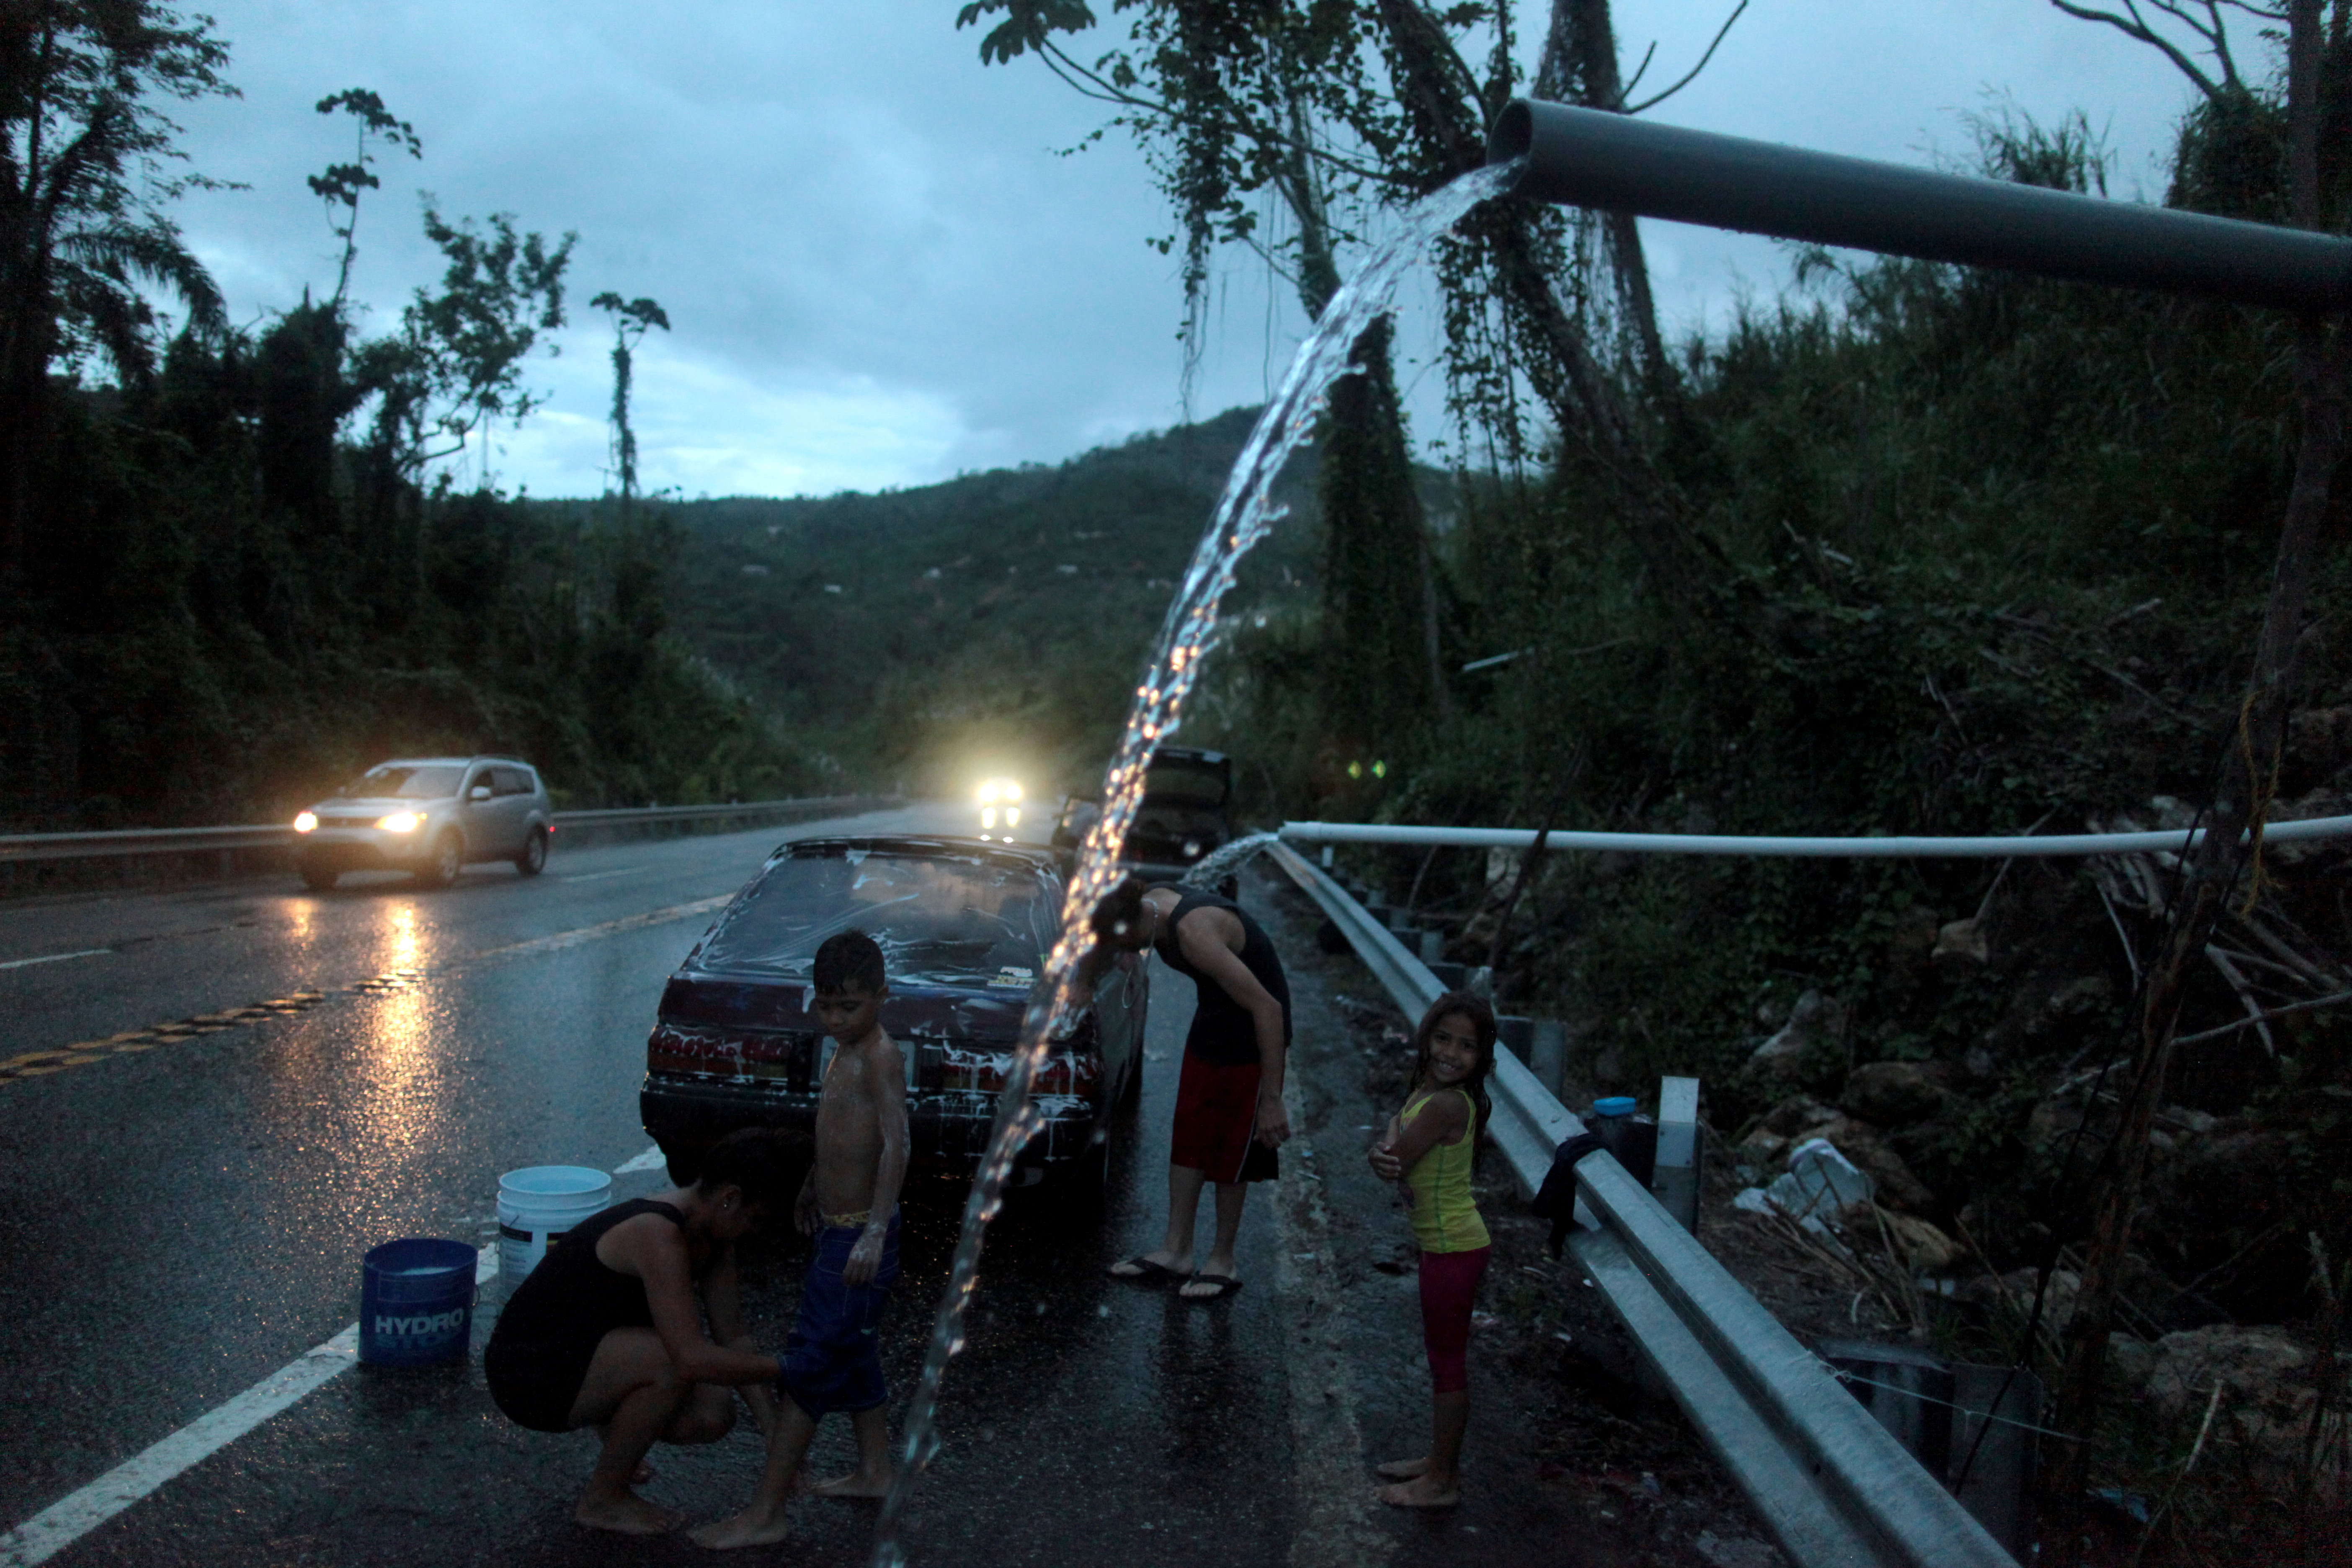 A family bathe and wash their car with mountain spring water after hurricane Maria hit the area in September, in Utuado, Puerto Rico.